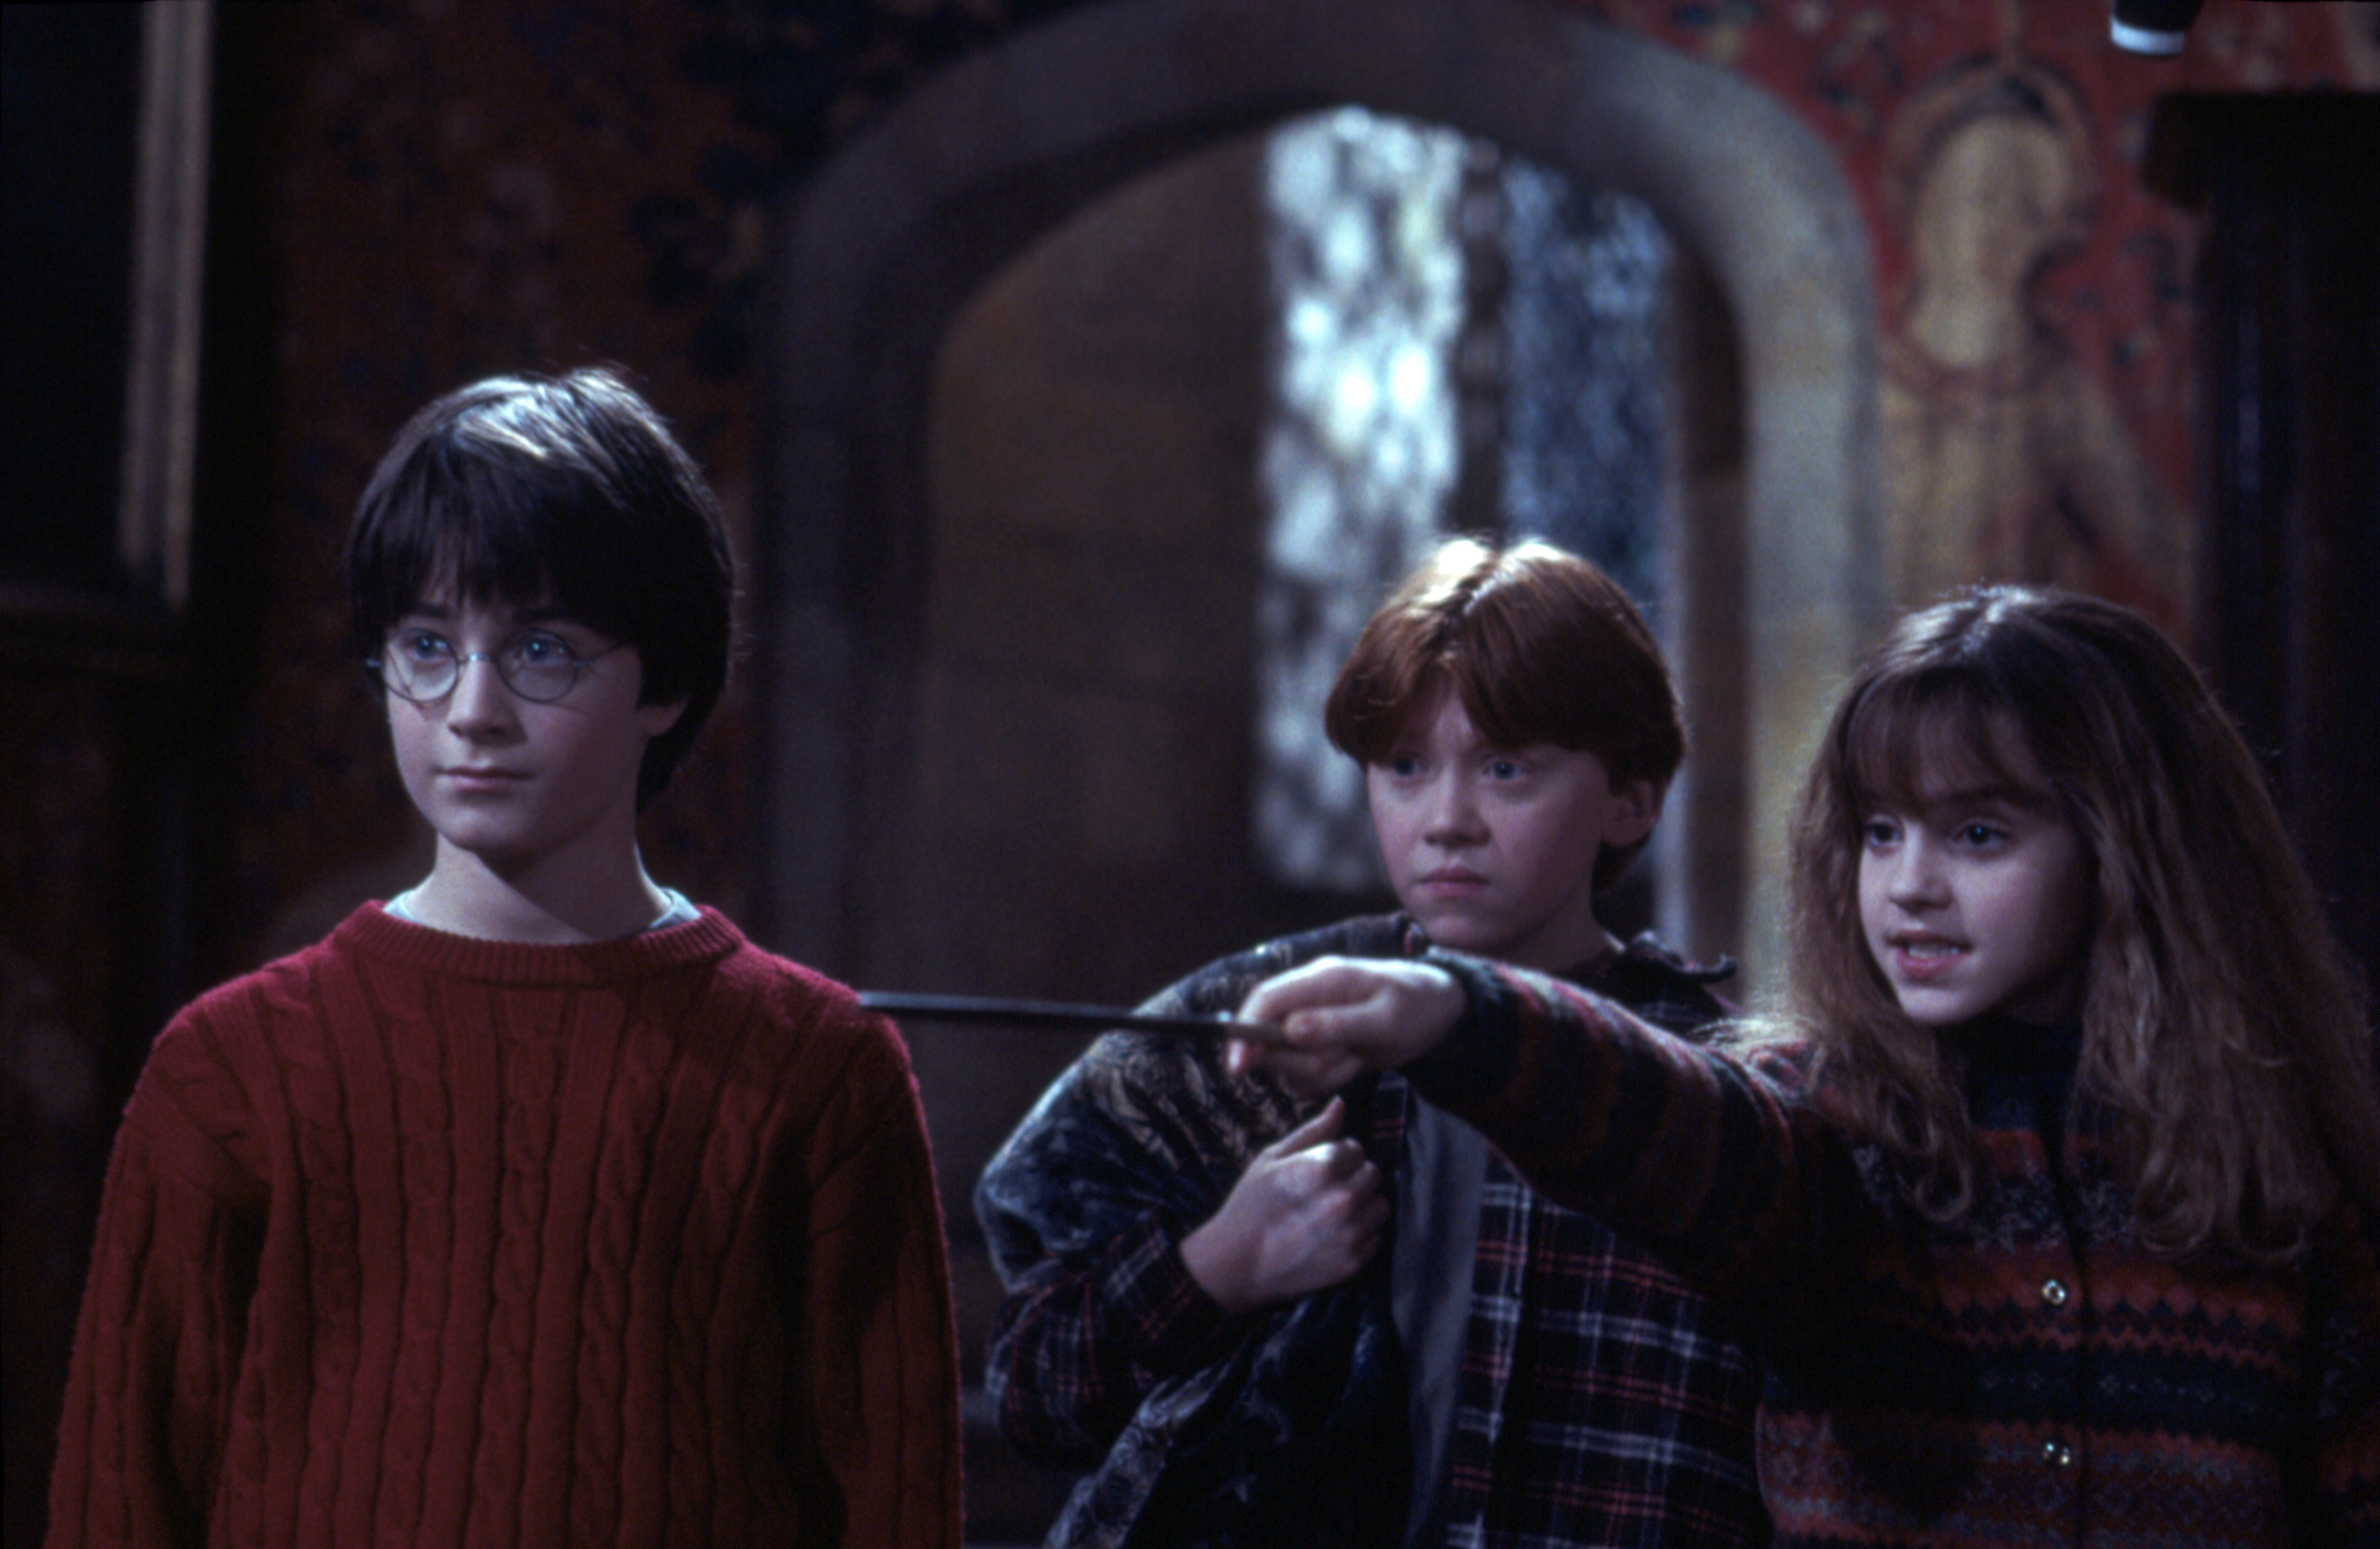 BWW Review: HARRY POTTER AND THE PHILOSOPHER'S STONE IN CONCERT Will Make You Believe in Magic